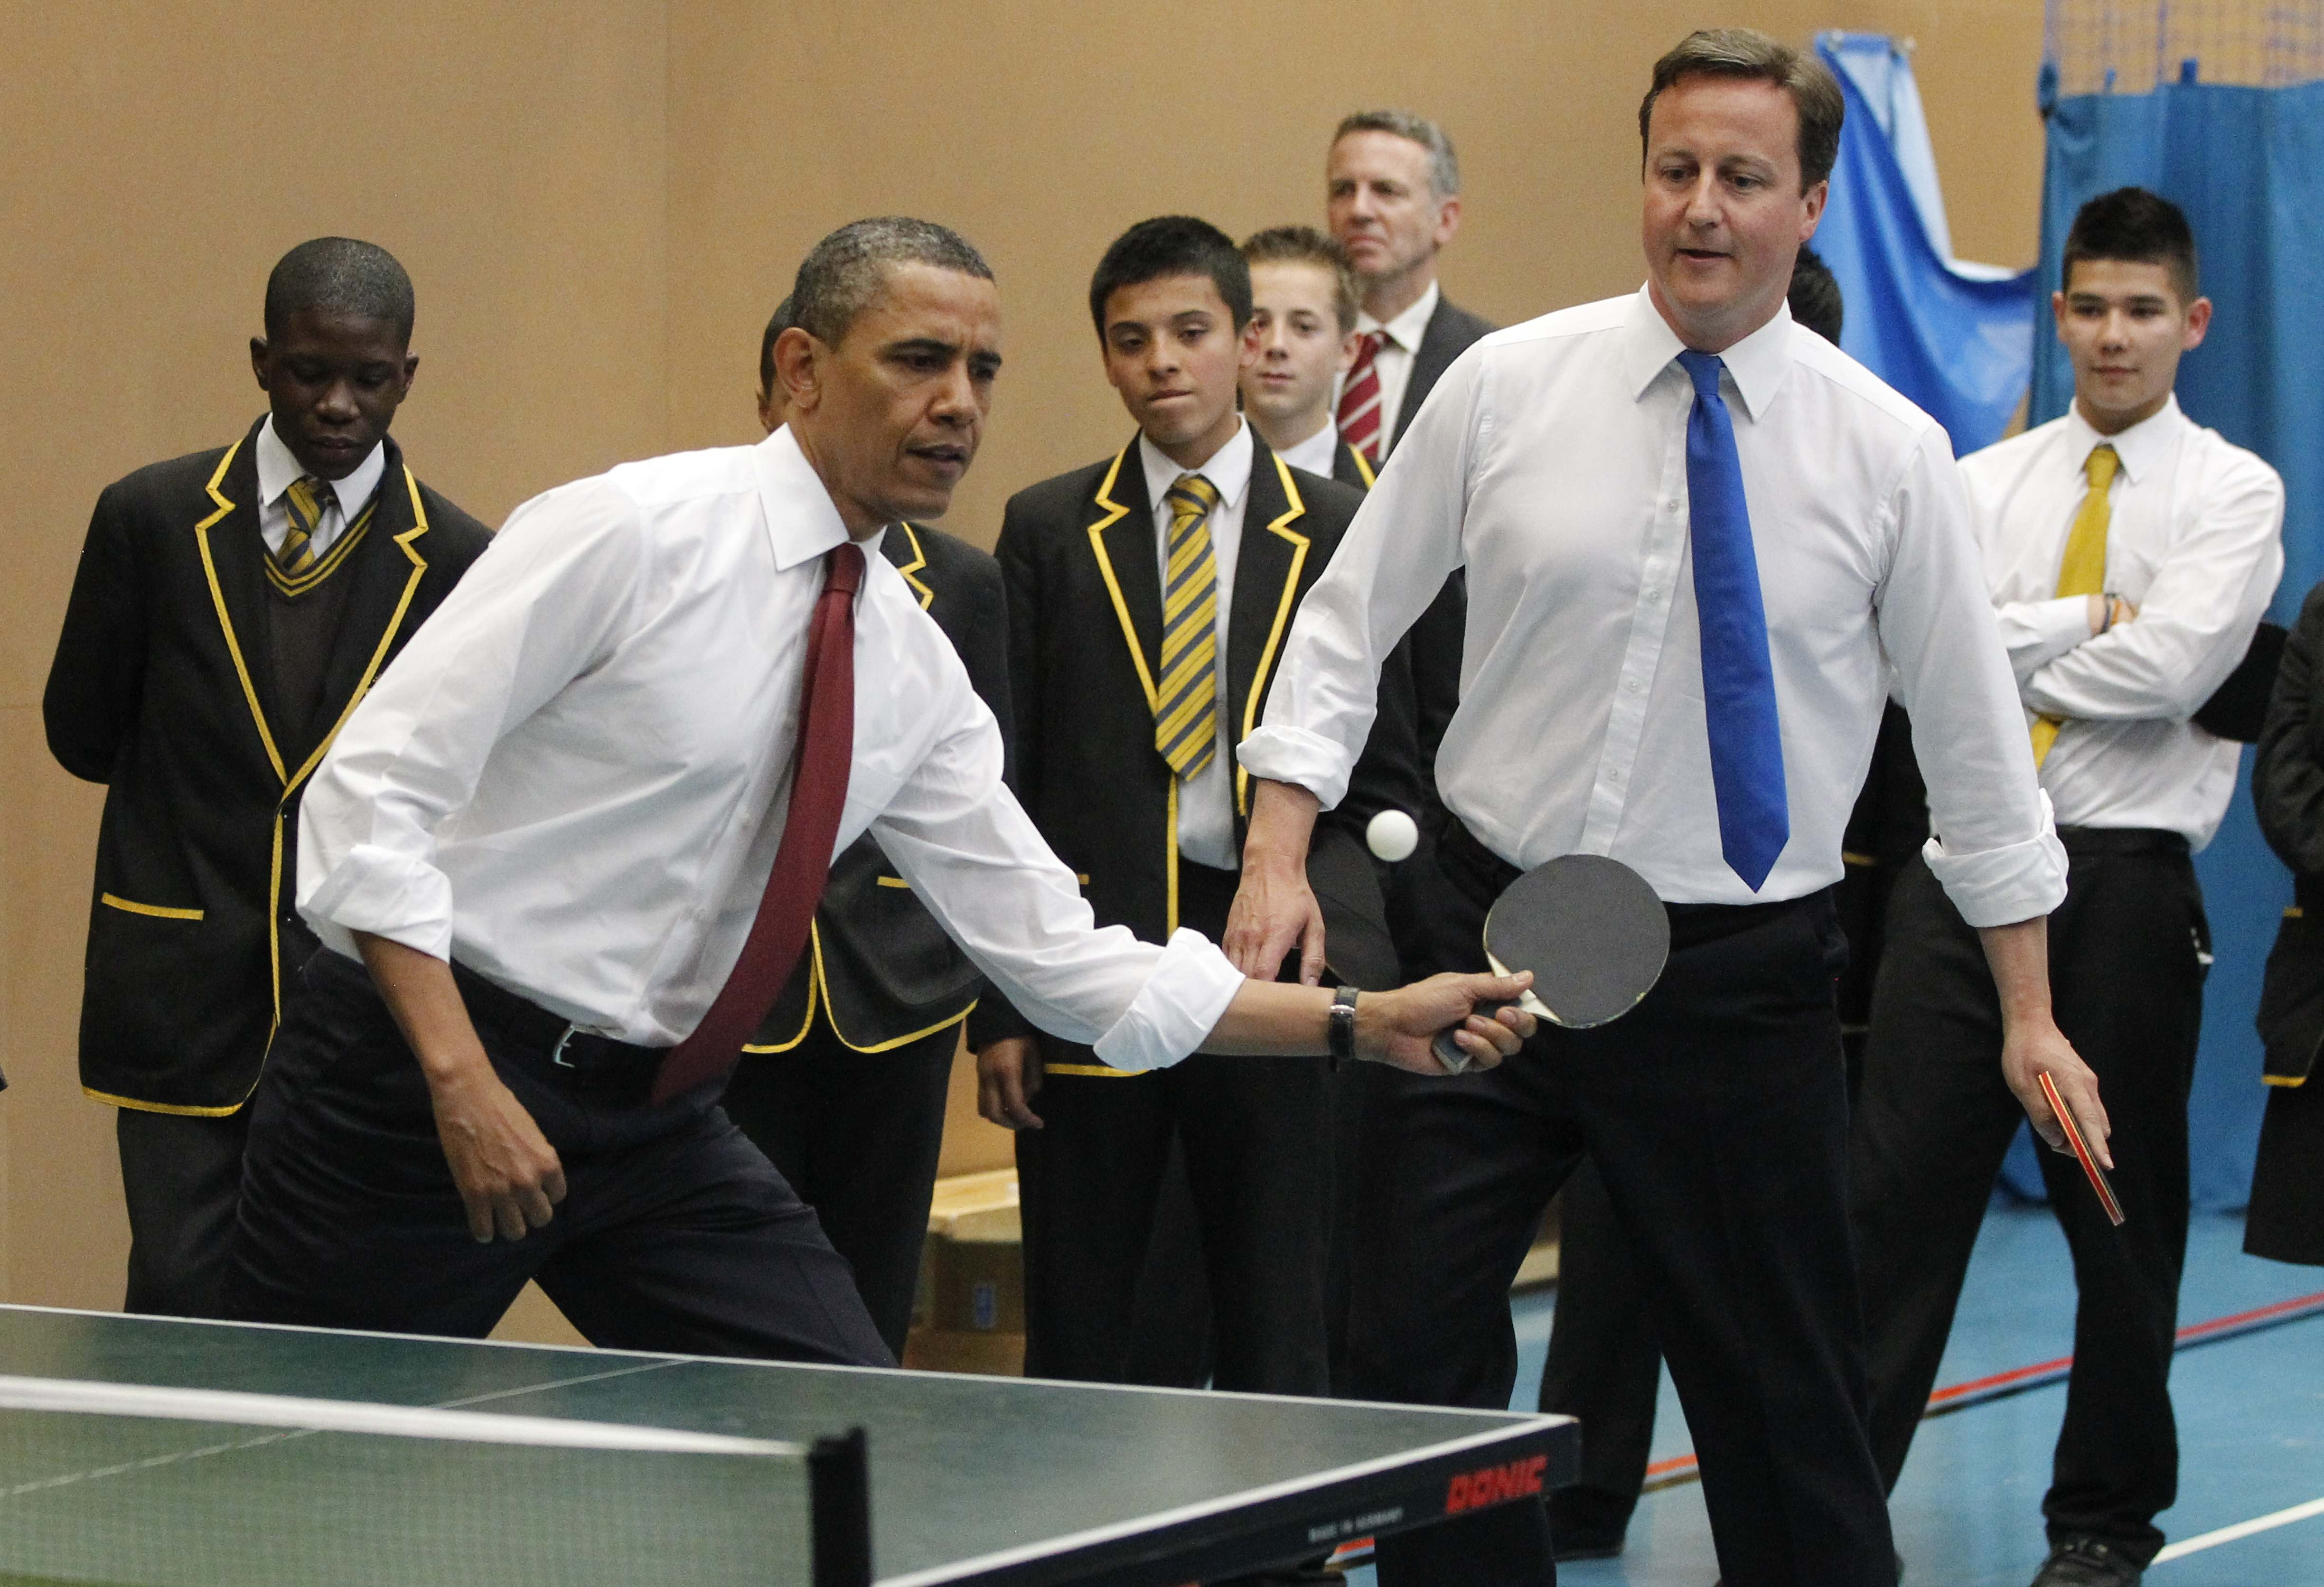 tennis and table tennis Table tennis: table tennis, ball game similar in principle to lawn tennis and played using a lightweight hollow ball and paddles on a flat table divided into two equal courts by a net.